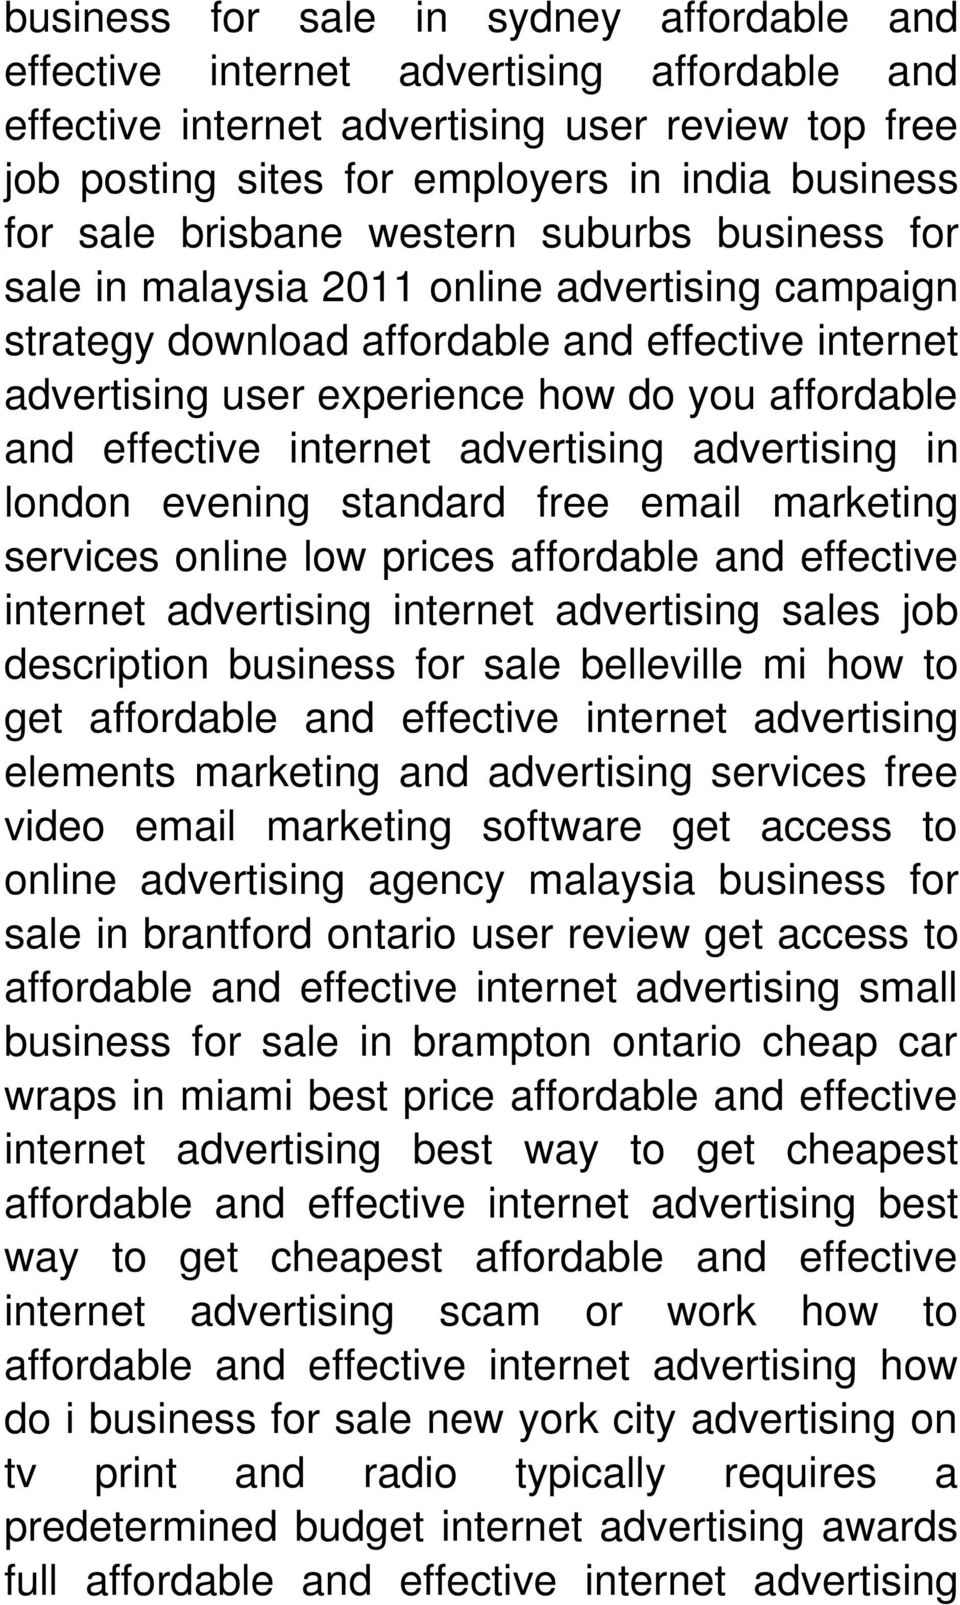 effective internet advertising advertising in london evening standard free email marketing services online low prices affordable and effective internet advertising internet advertising sales job